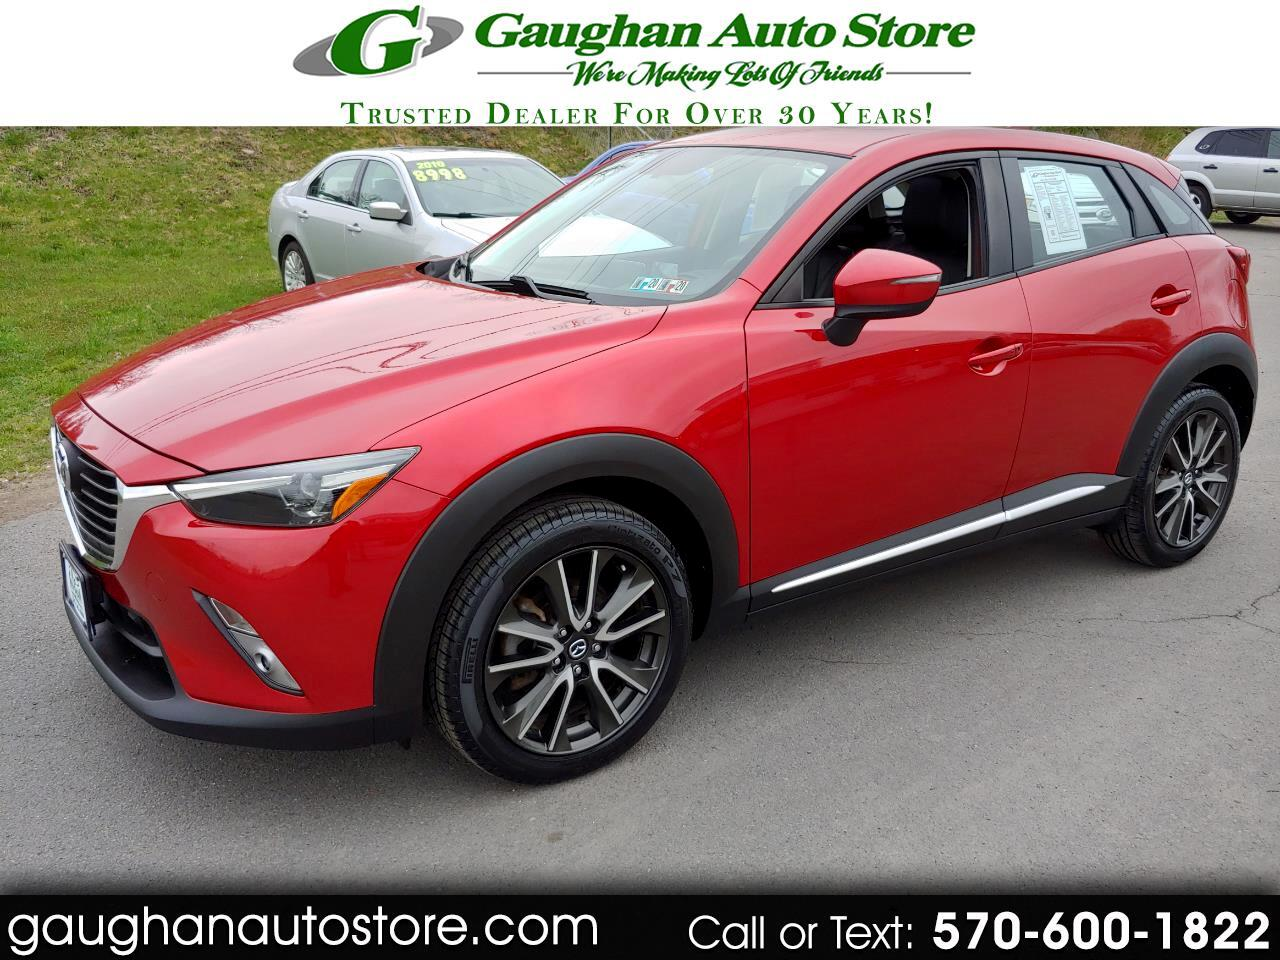 2016 Mazda CX-3 AWD GRAND TOURING /LEATHER/CAMERA/MOONROOF